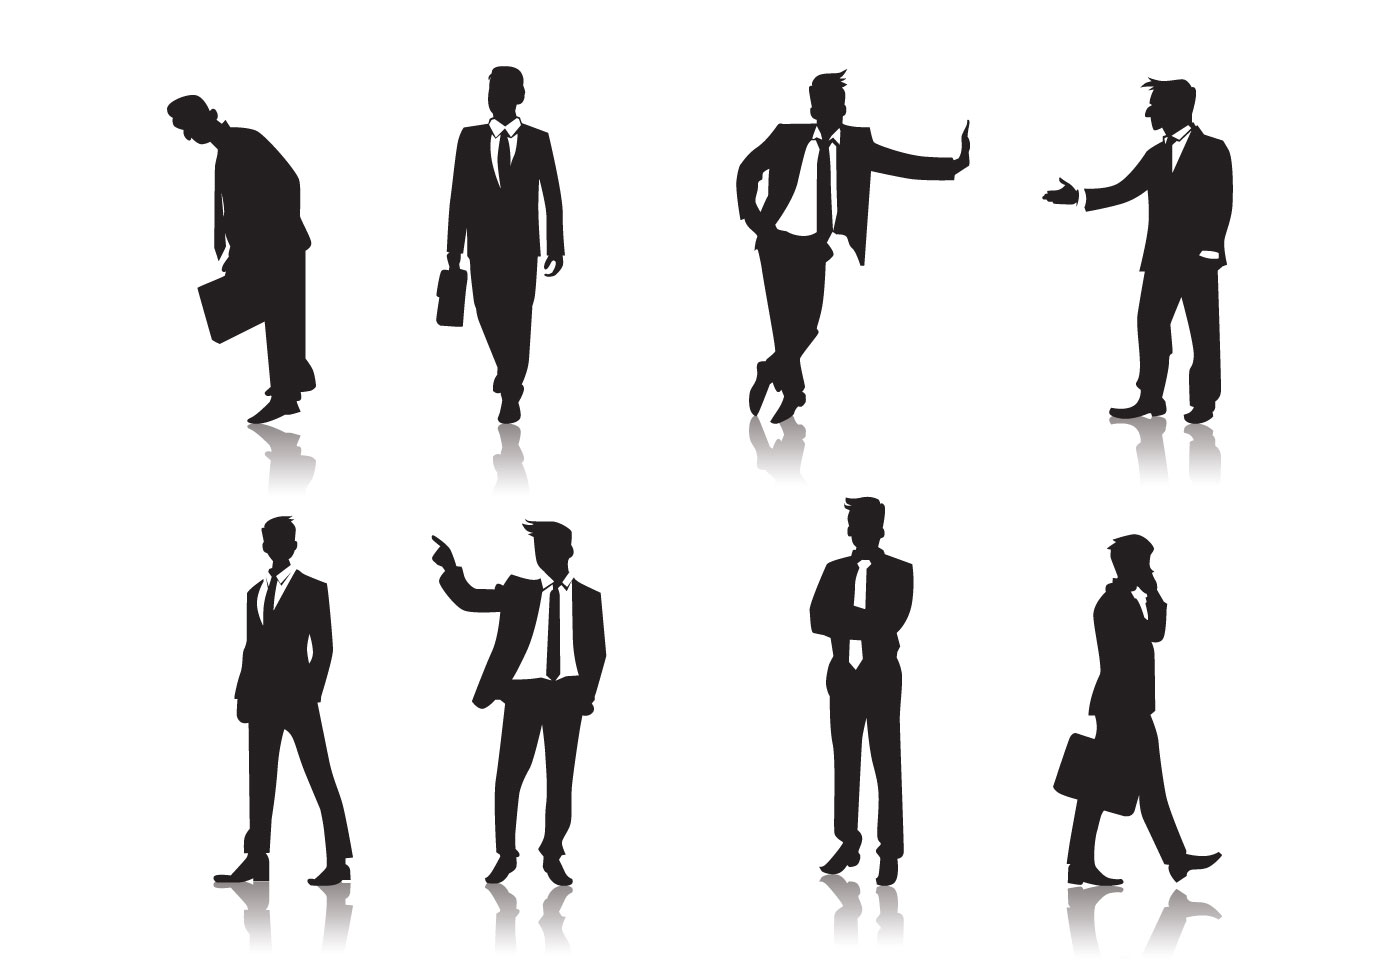 Standing Men People Silhouettes Vector - Download Free ...